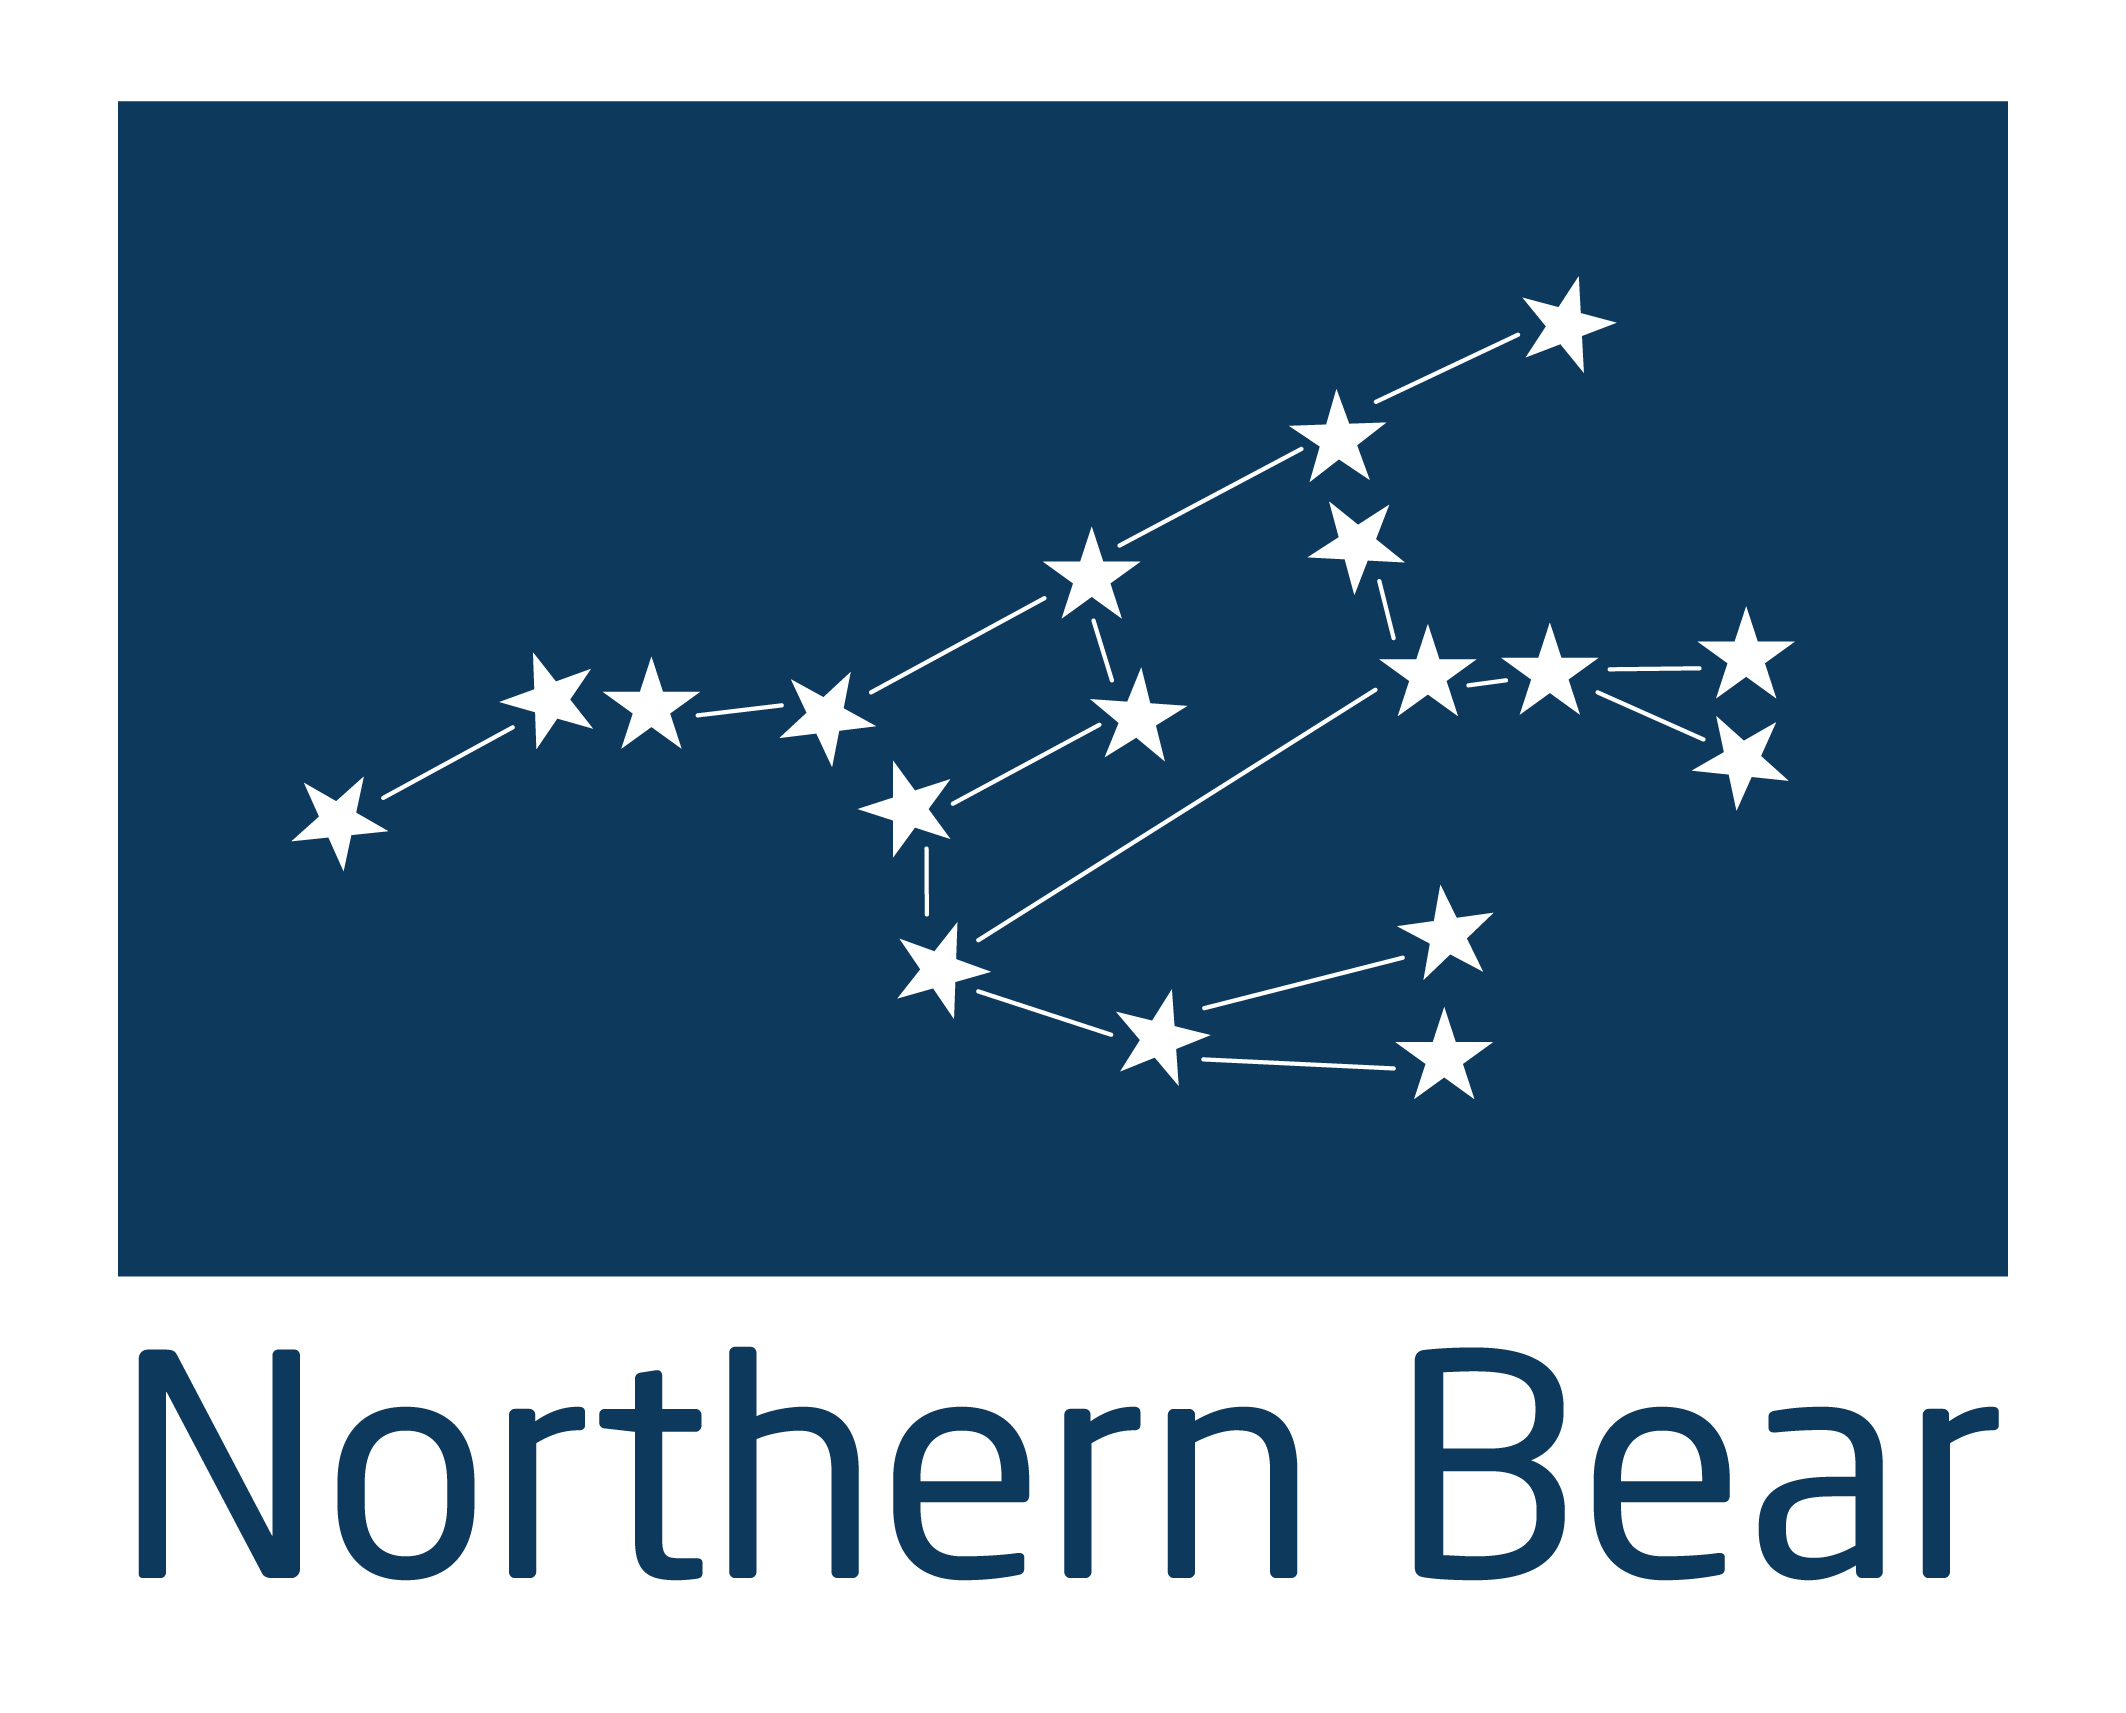 Northern Bear